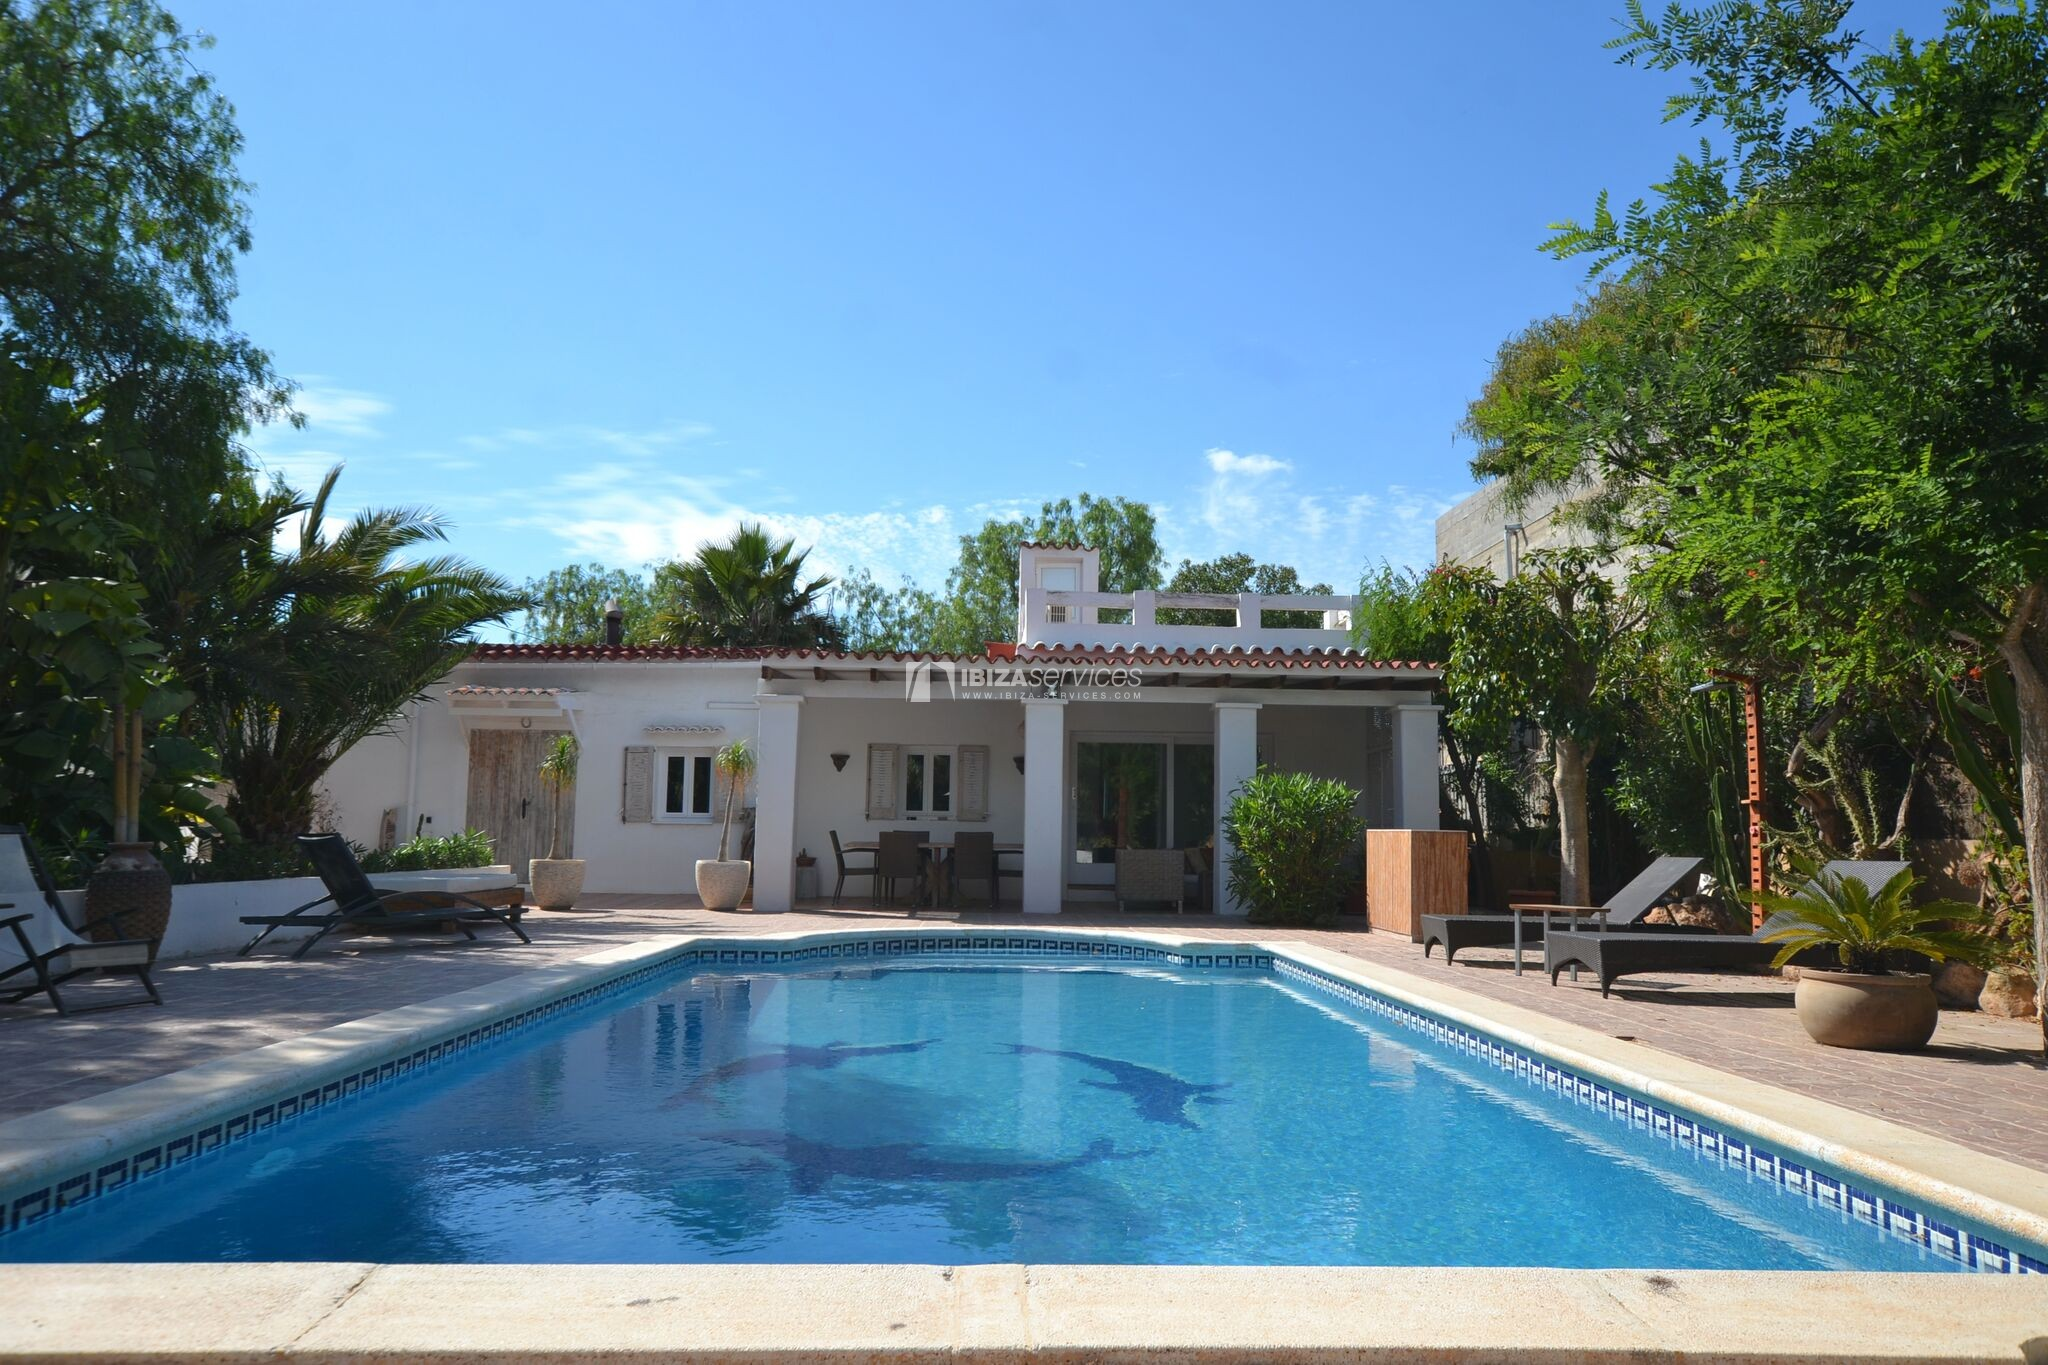 Charming house weekly rental San jordi